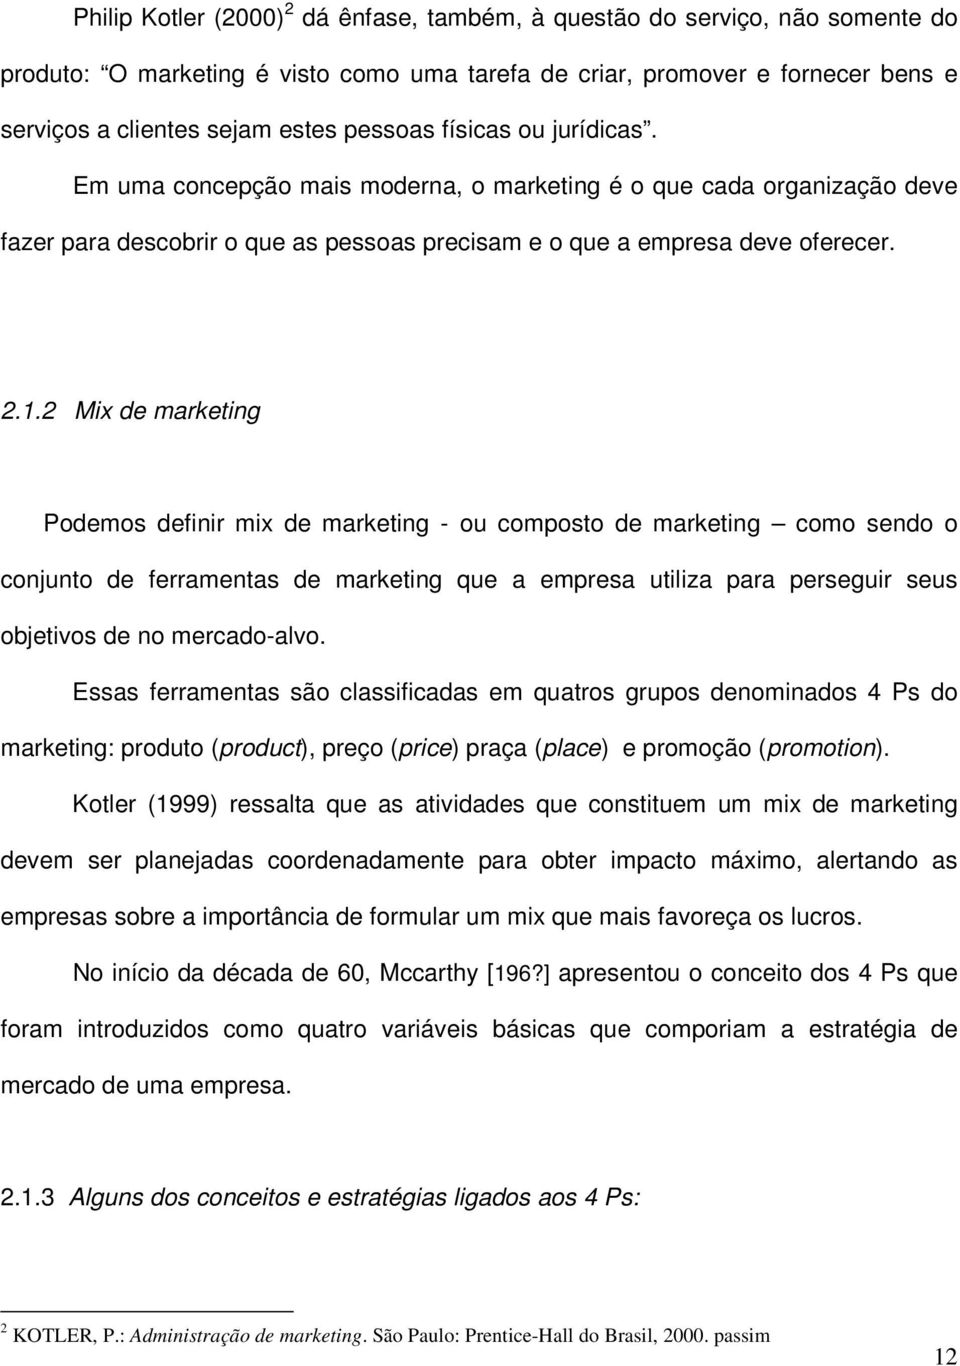 2 Mix de marketing Podemos definir mix de marketing - ou composto de marketing como sendo o conjunto de ferramentas de marketing que a empresa utiliza para perseguir seus objetivos de no mercado-alvo.